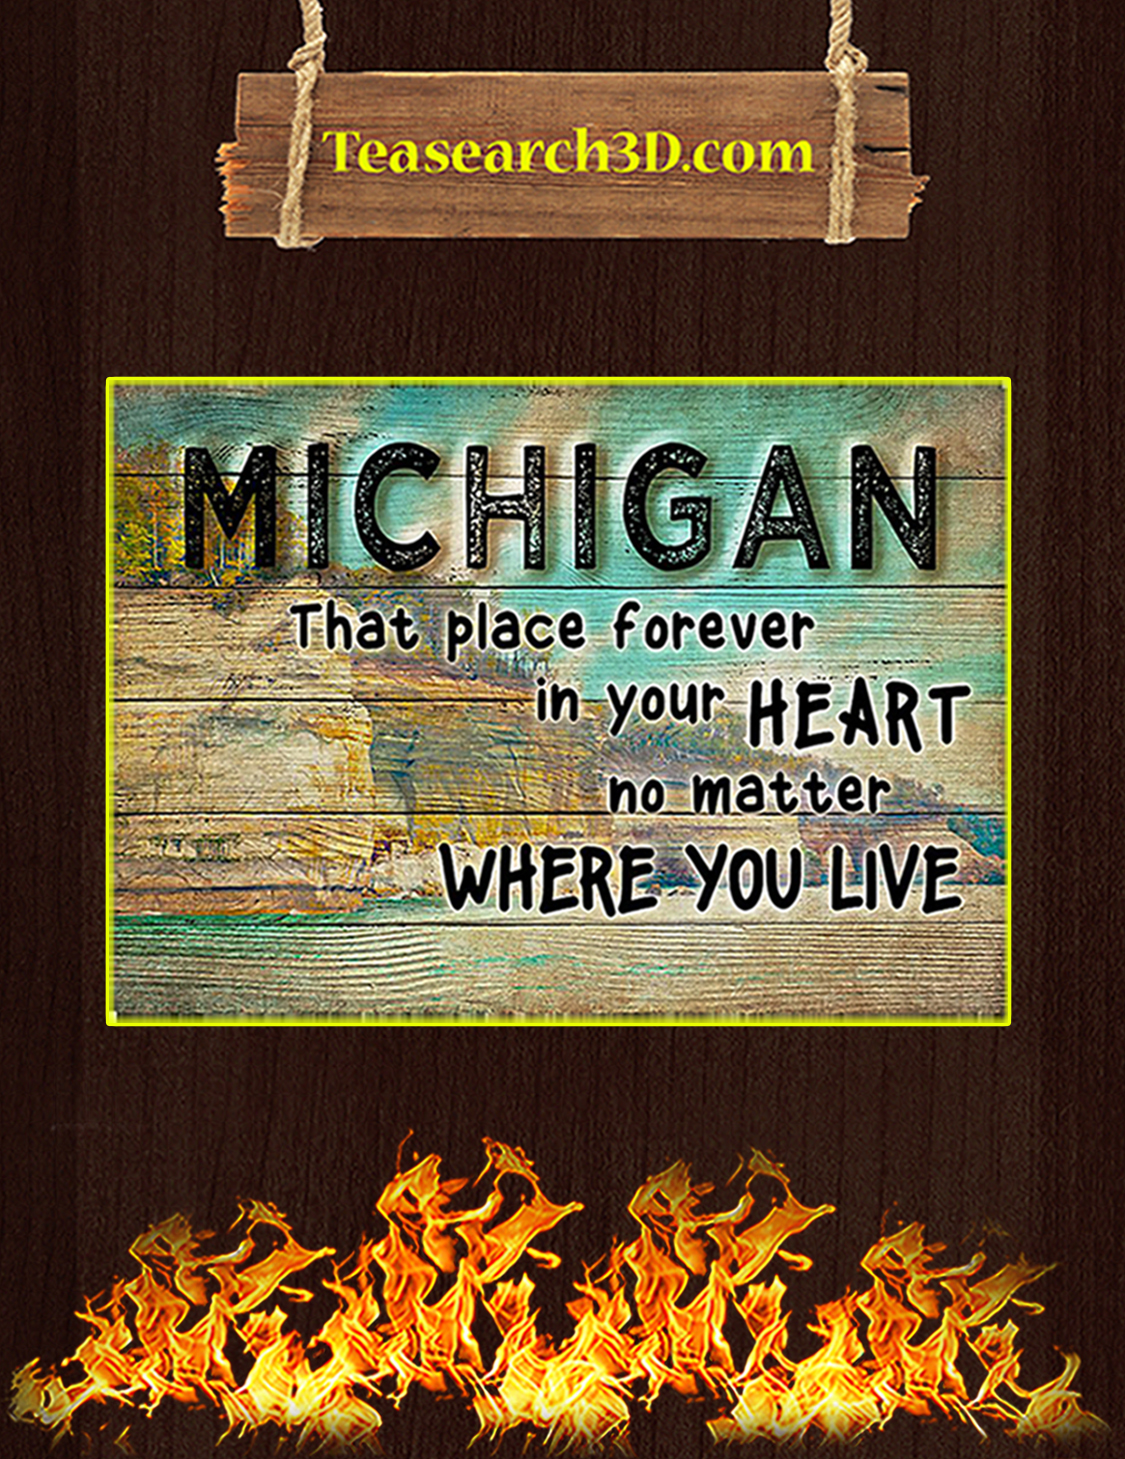 Michigan that place forever in your heart poster A3